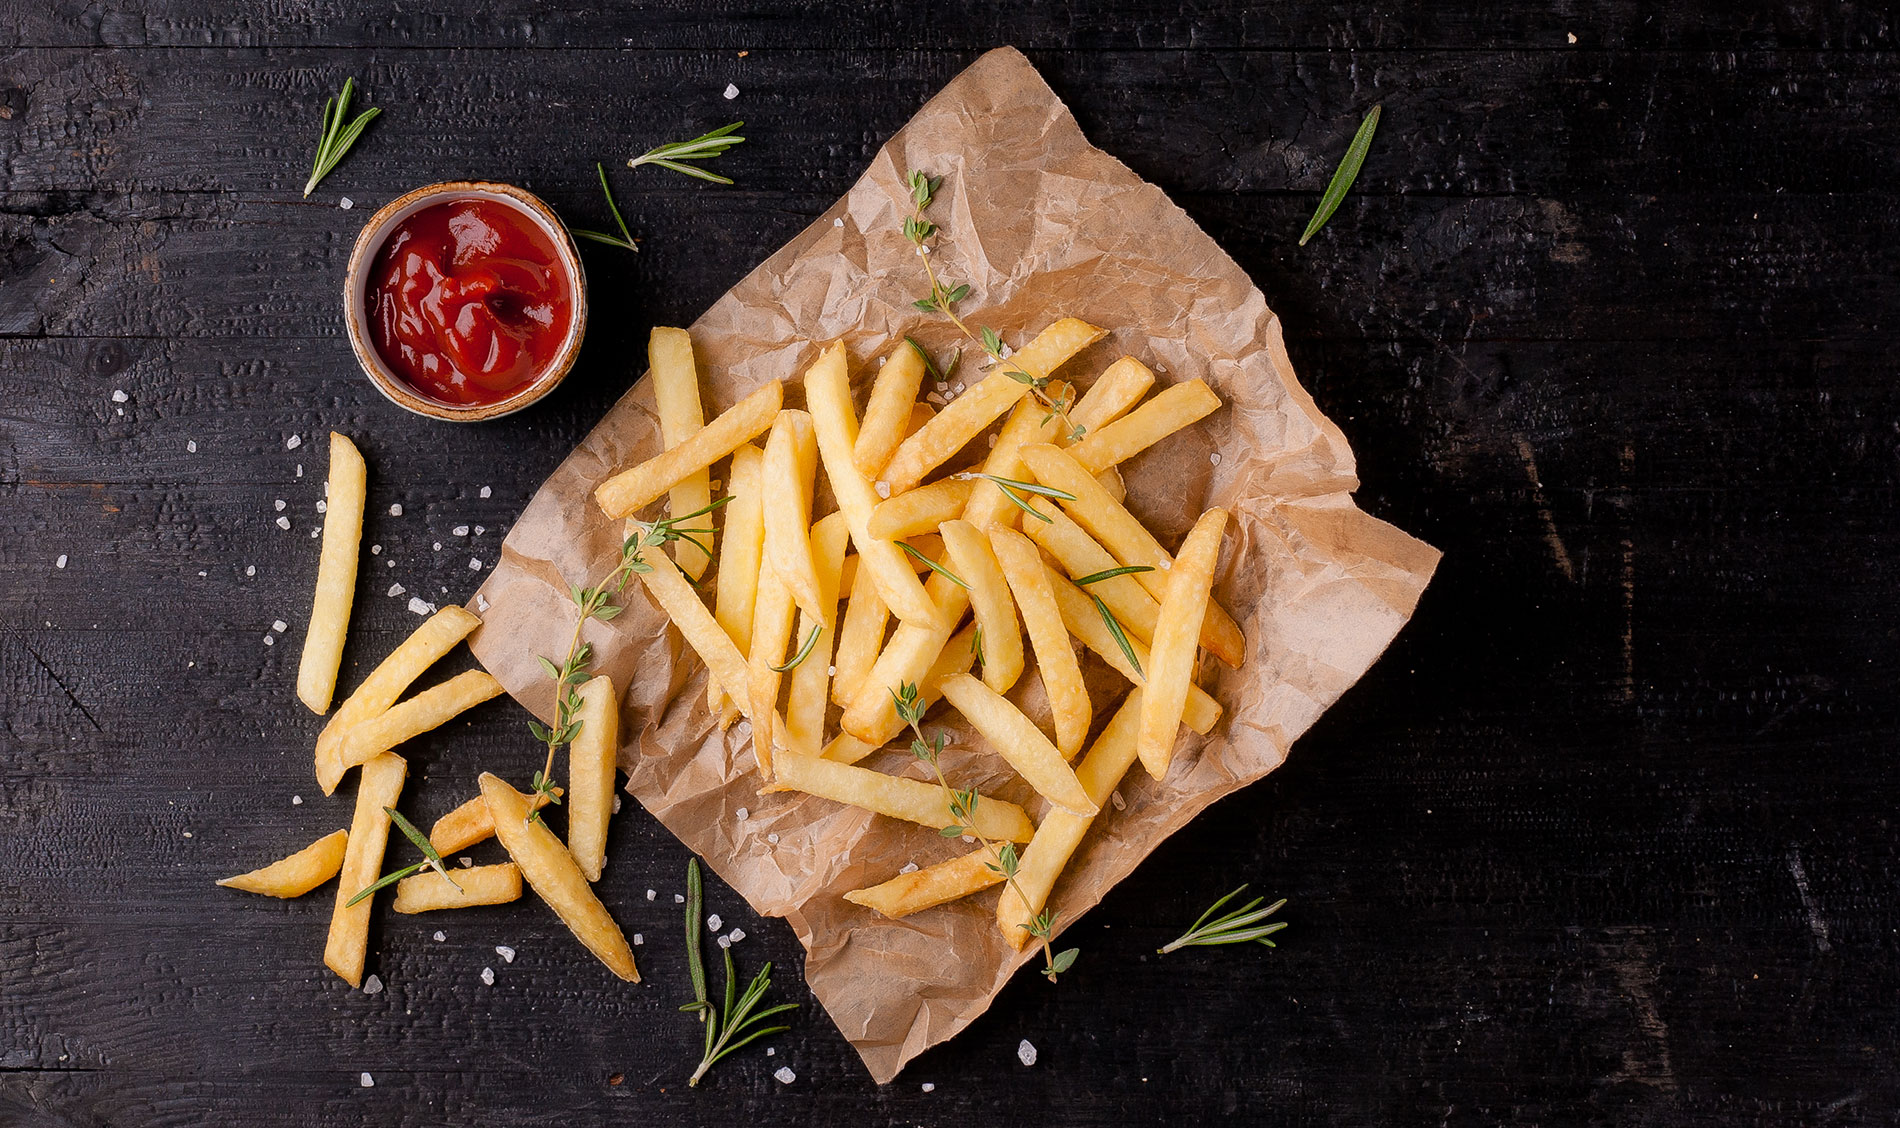 French fries and poutines